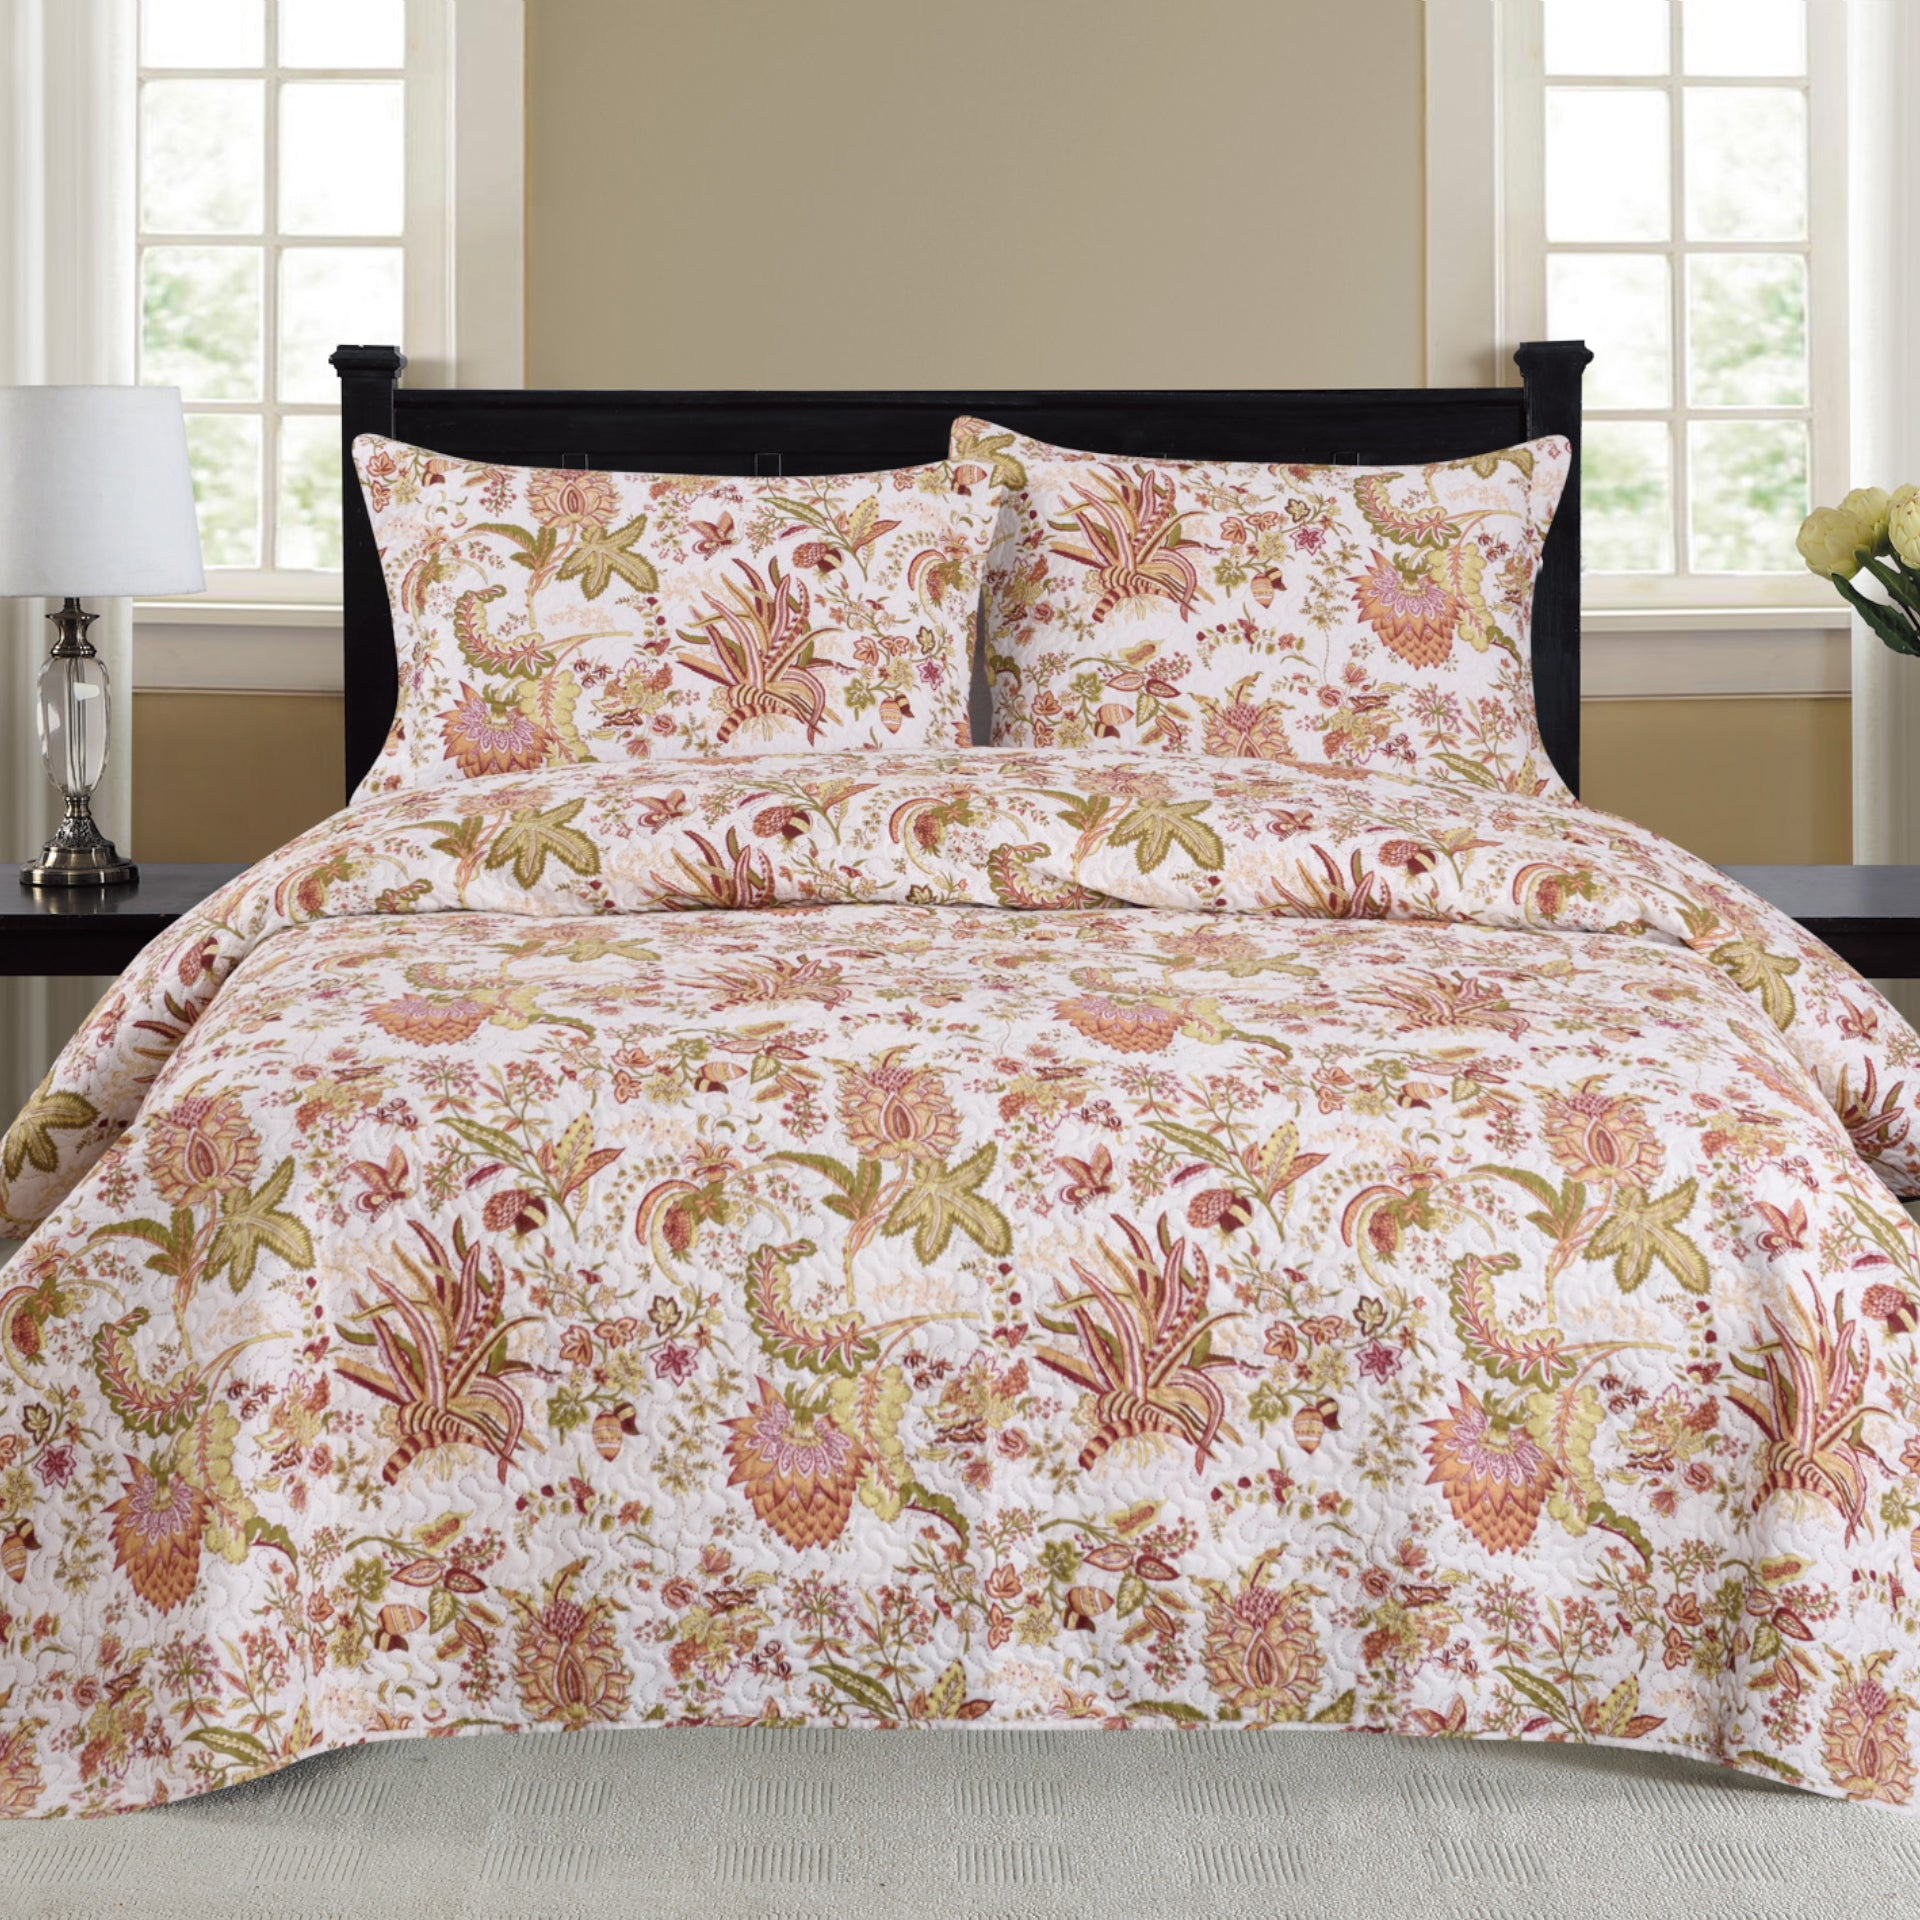 Nikki - 3 Piece Quilt Set - Multi - Glory Home Design